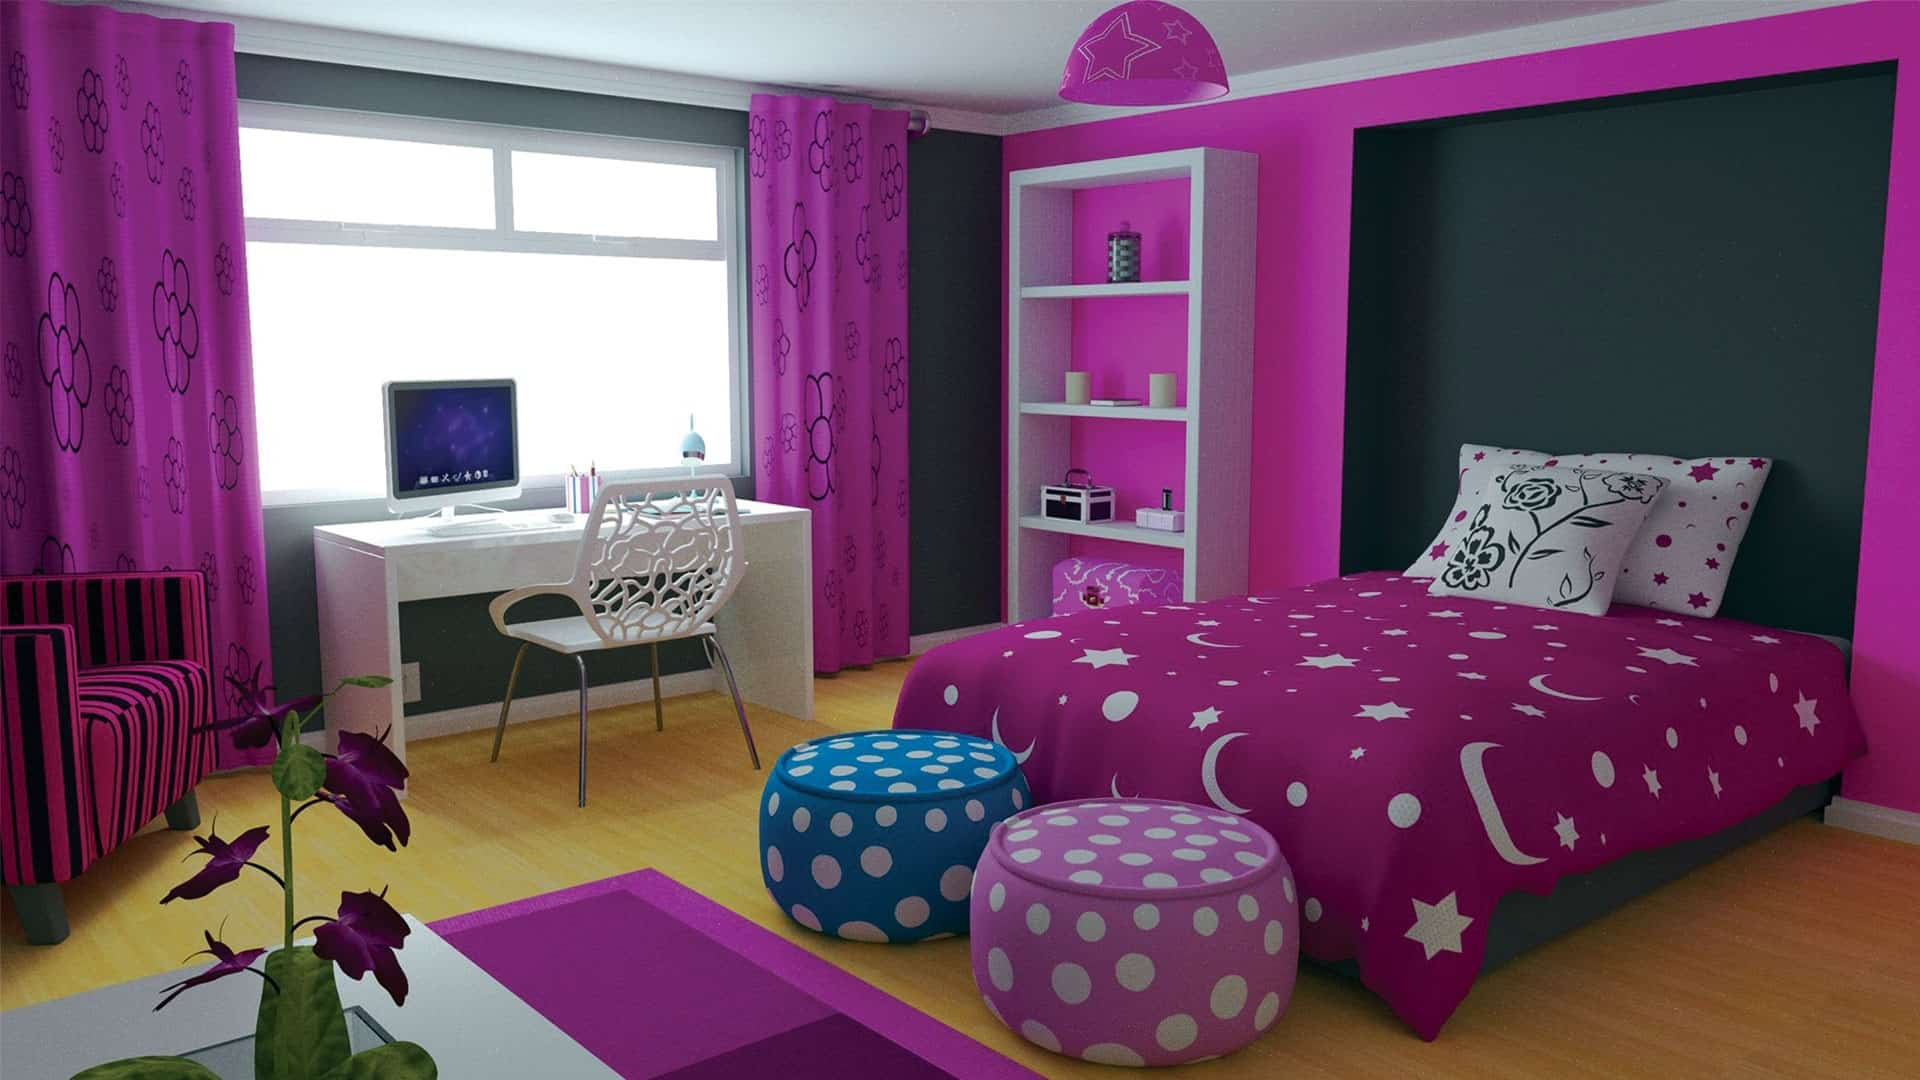 Home decor trends 2017 purple teen room - Bedroom design for teenager ...